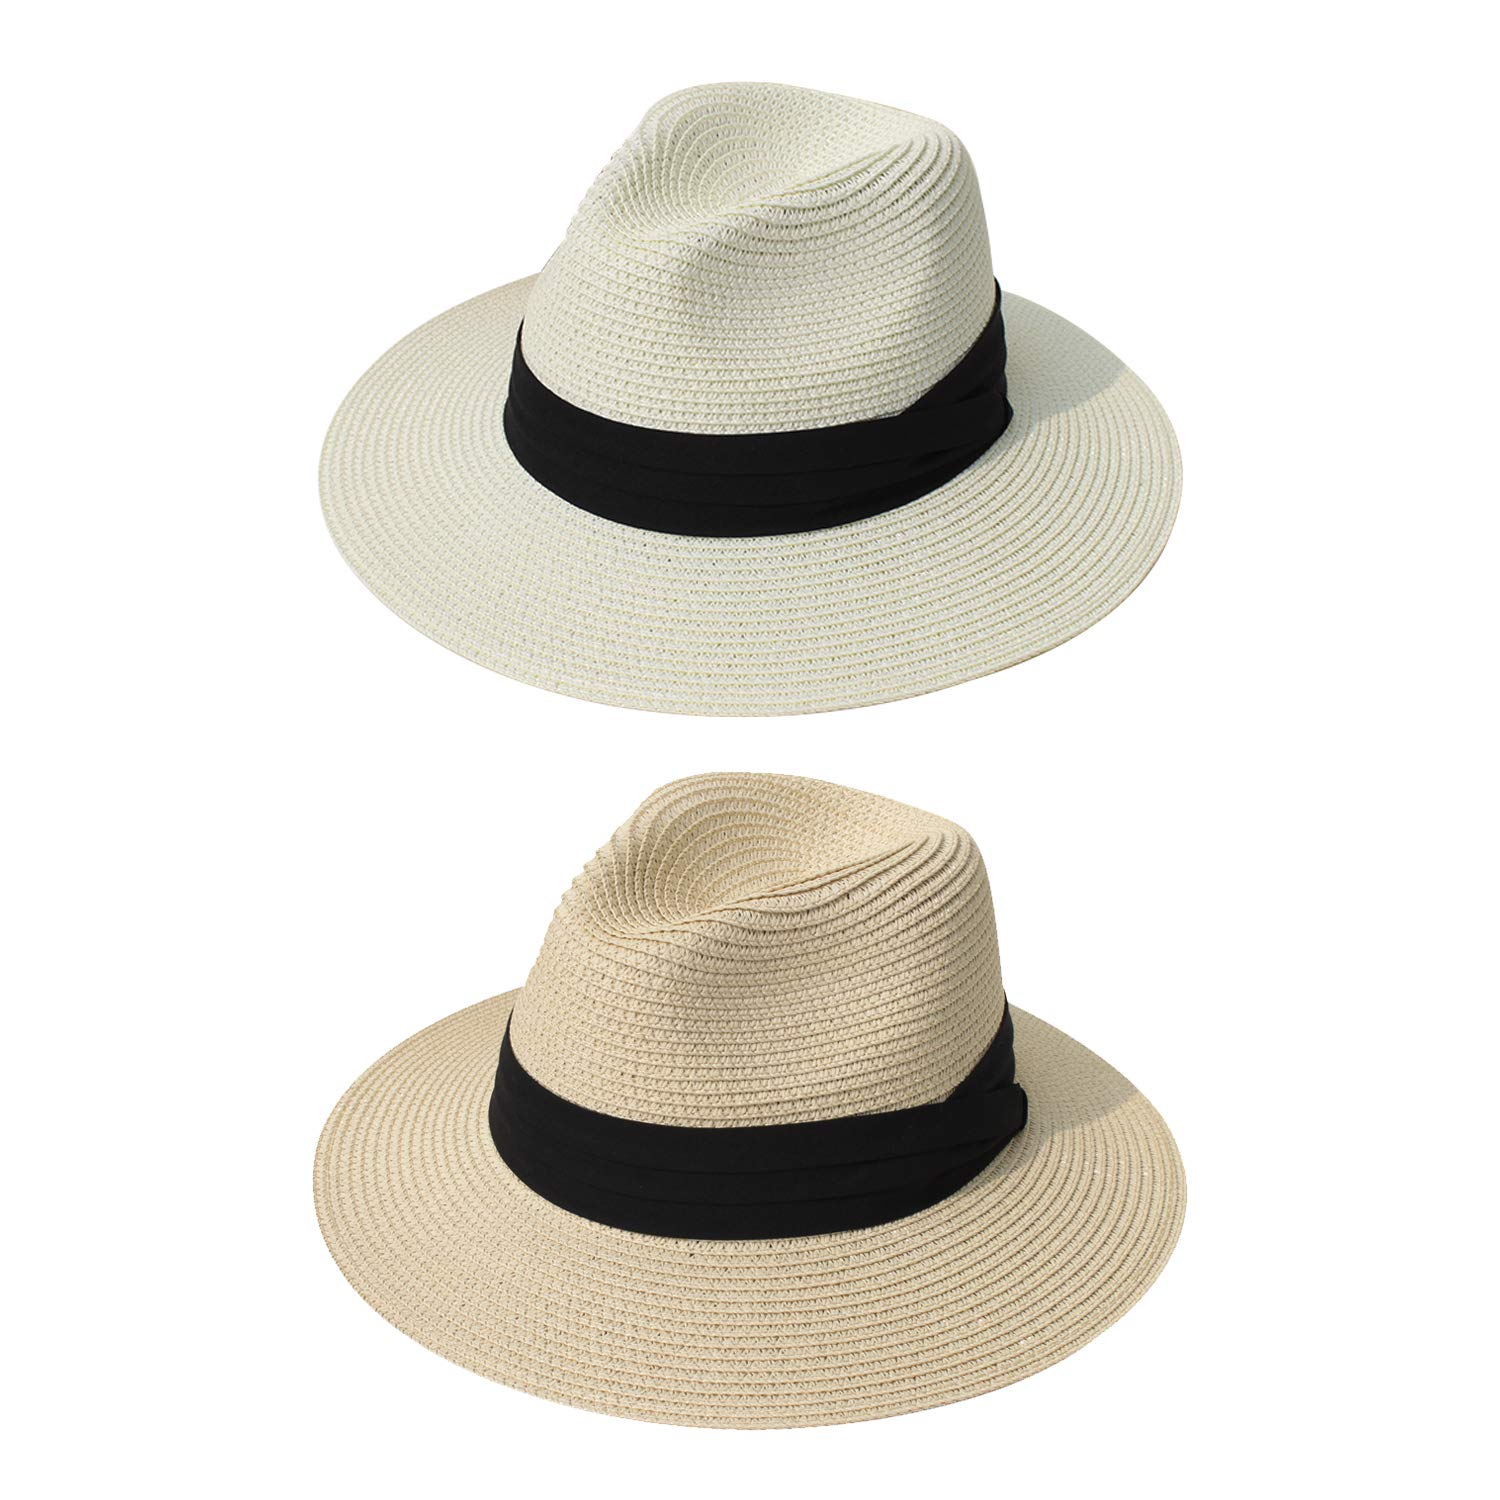 4864cc00c31b82 DRESHOW Women Straw Panama Hat Fedora Beach Sun Hat Wide Brim Straw Roll up  Hat UPF 50+ (2 Pack Fedora: Beige, Ivory) at Amazon Women's Clothing store: